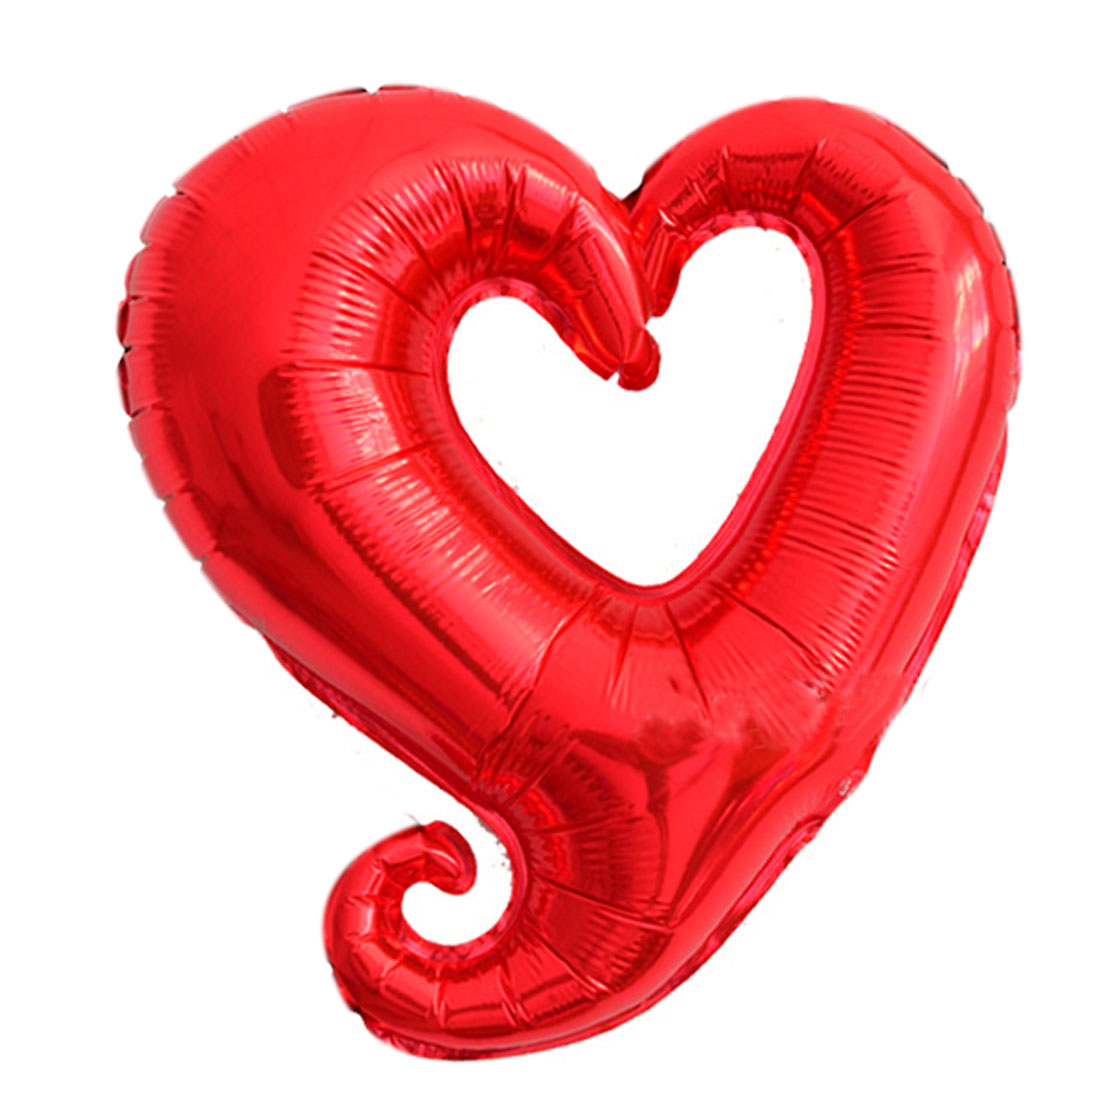 Unique Bargains Foil Heart Design Inflation Balloon Wedding Celebration Red 14.6 Inch